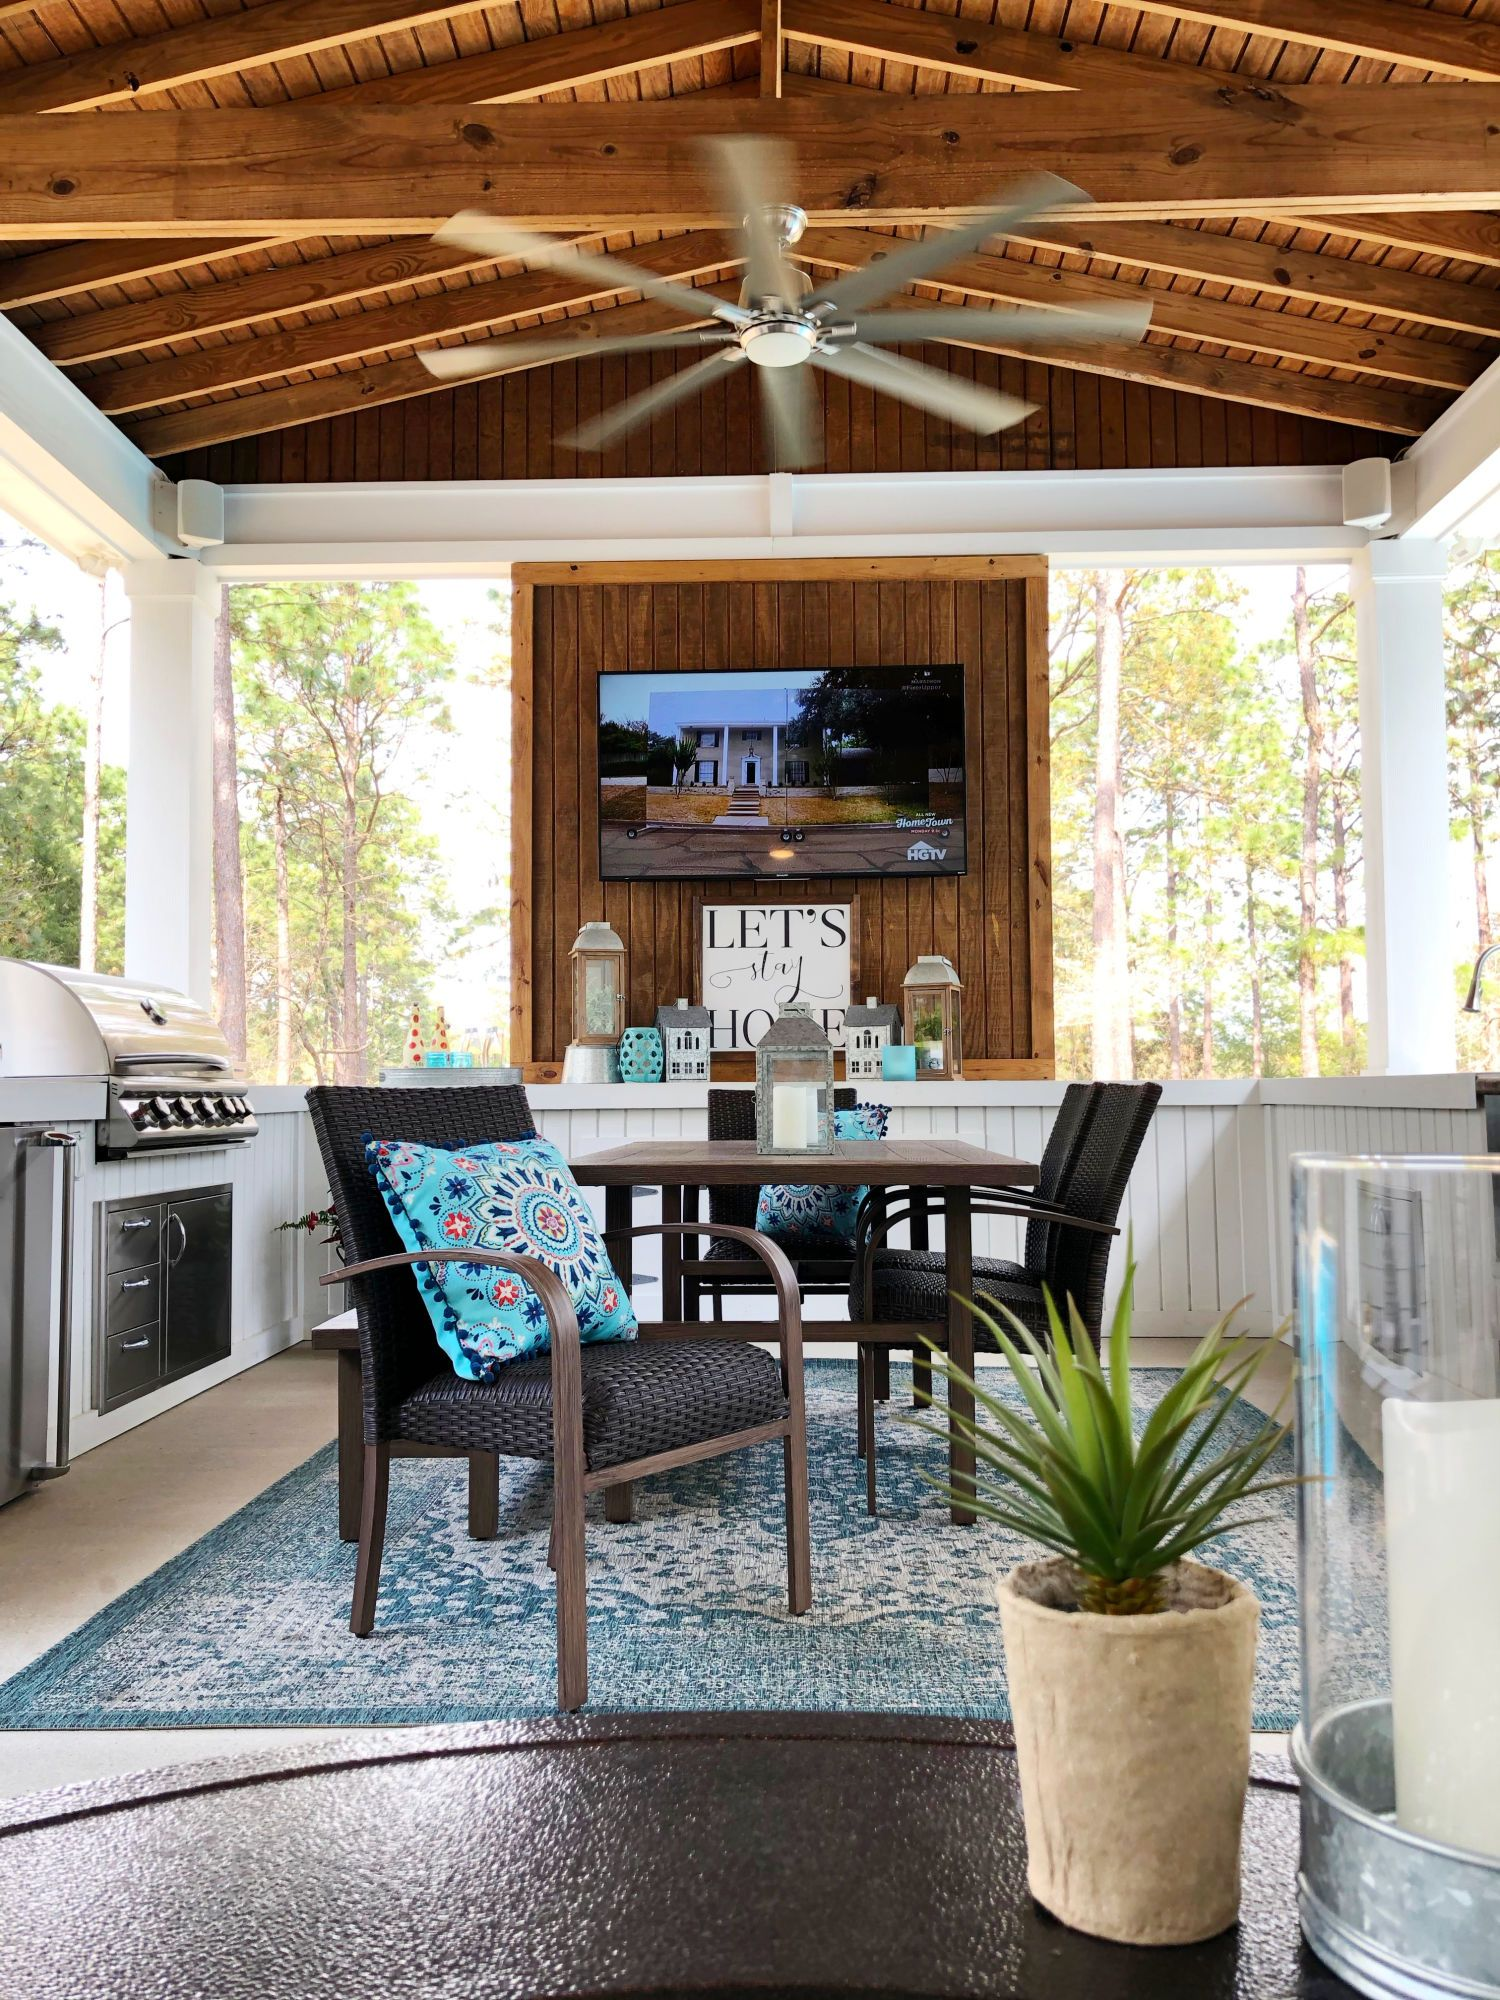 Back Porch Decorating Ideas On A Budget Savvy Apron Back Deck Decorating Deck Decorating Ideas On A Budget Outdoor Living Rooms